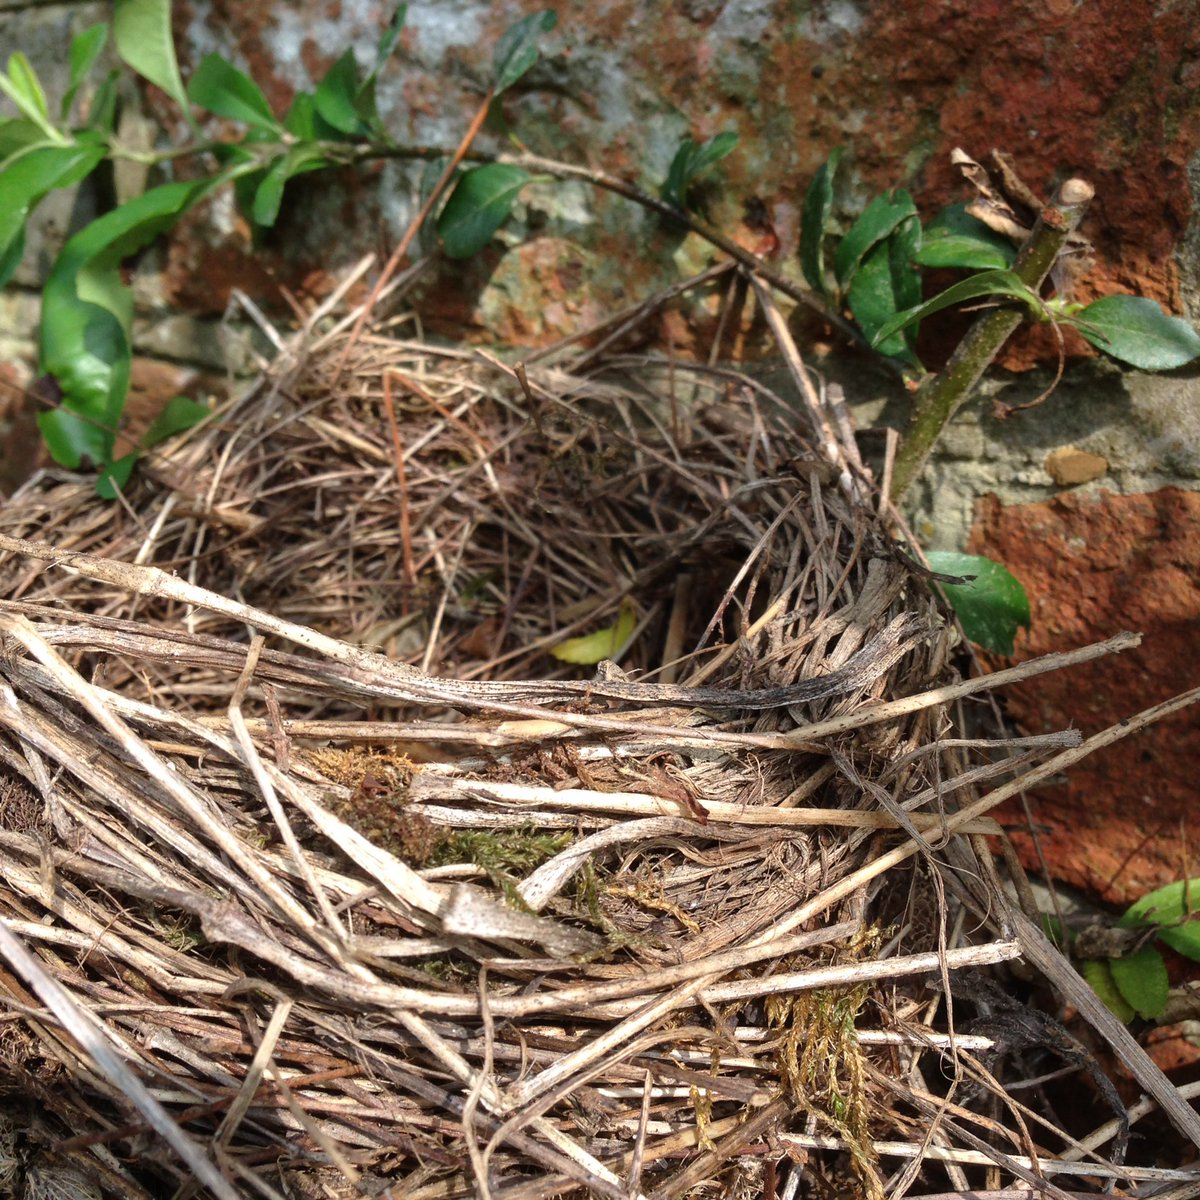 Nice things found while doing the ramblers. Nest in use for five years now.  #pruning #roses #nests #gardenbirds #recycle <br>http://pic.twitter.com/F8Bbe9e5Vv